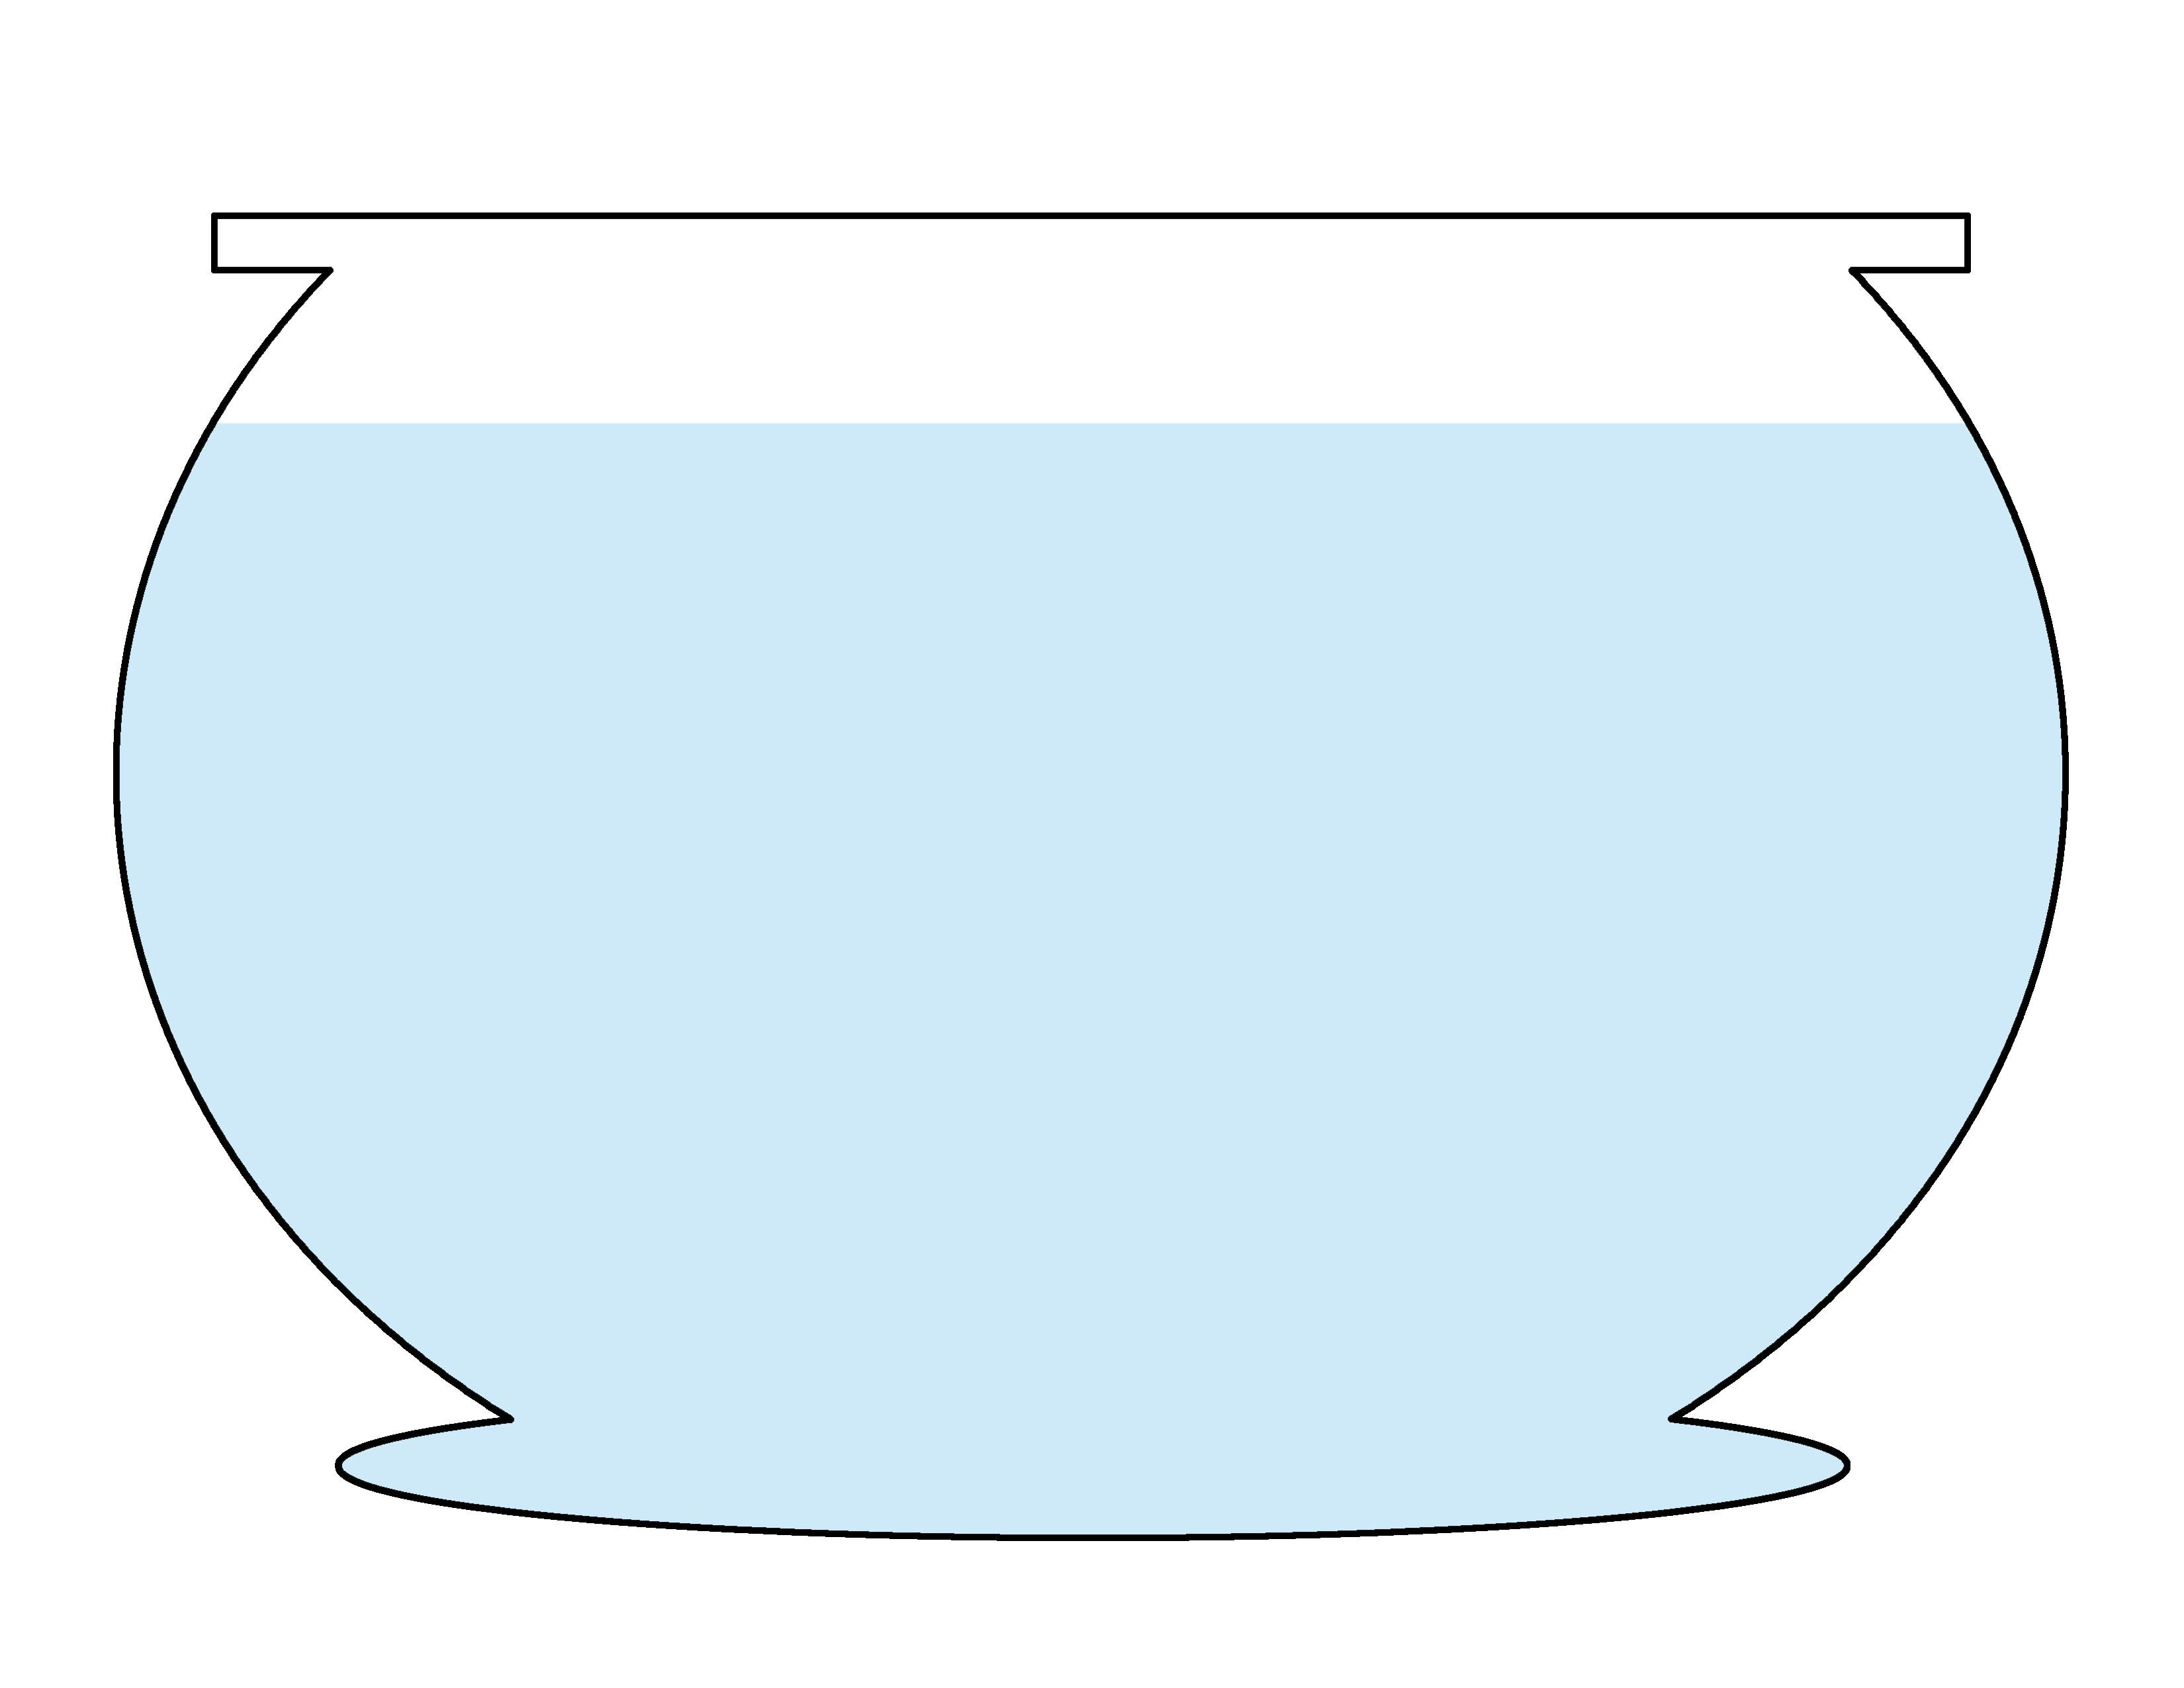 graphic about Printable Fish Bowl referred to as Do it yourself Handprint Fish in just a Fishbowl